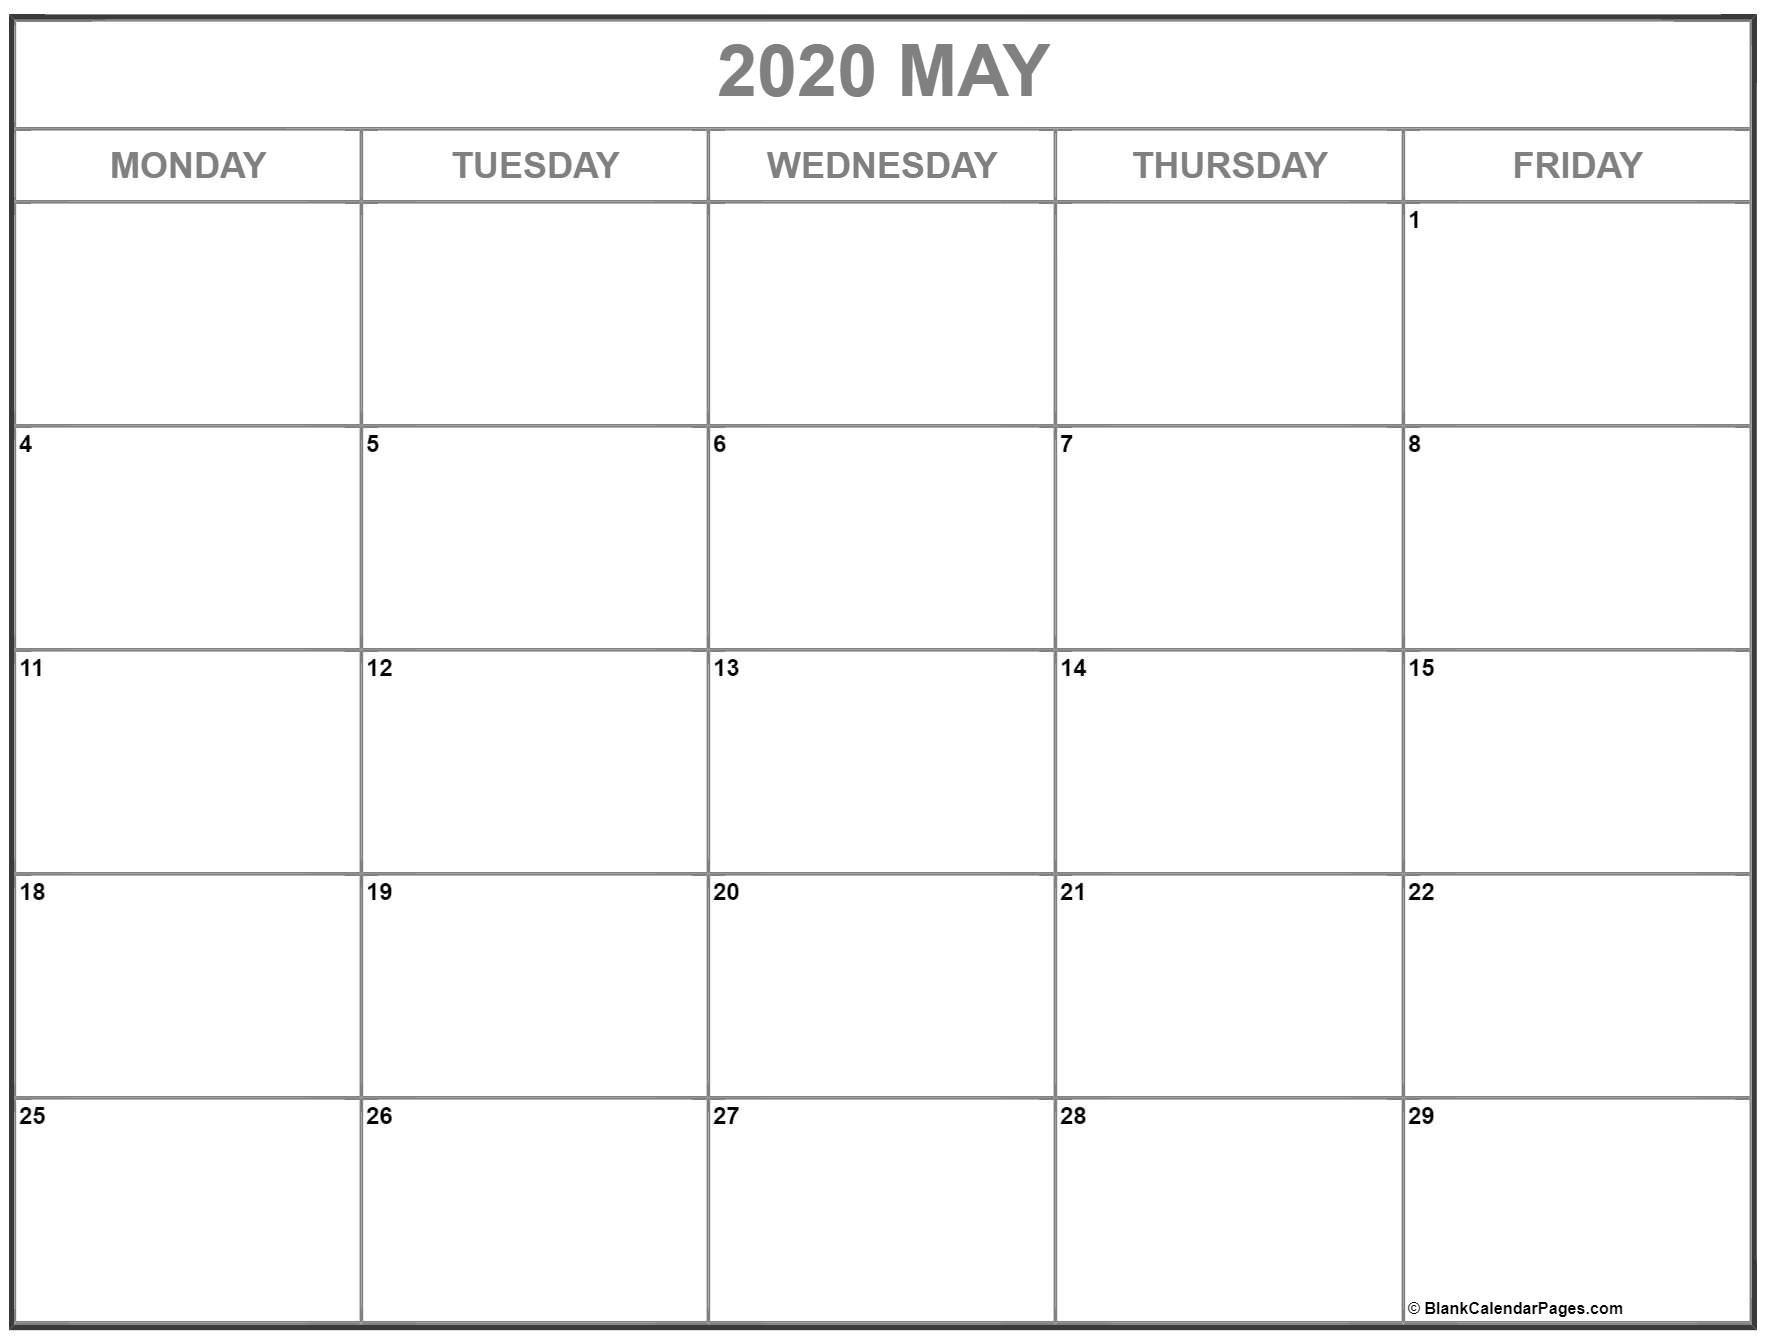 May 2020 Monday Calendar | Monday To Sunday Monday To Friday Printable Monthly Calendar